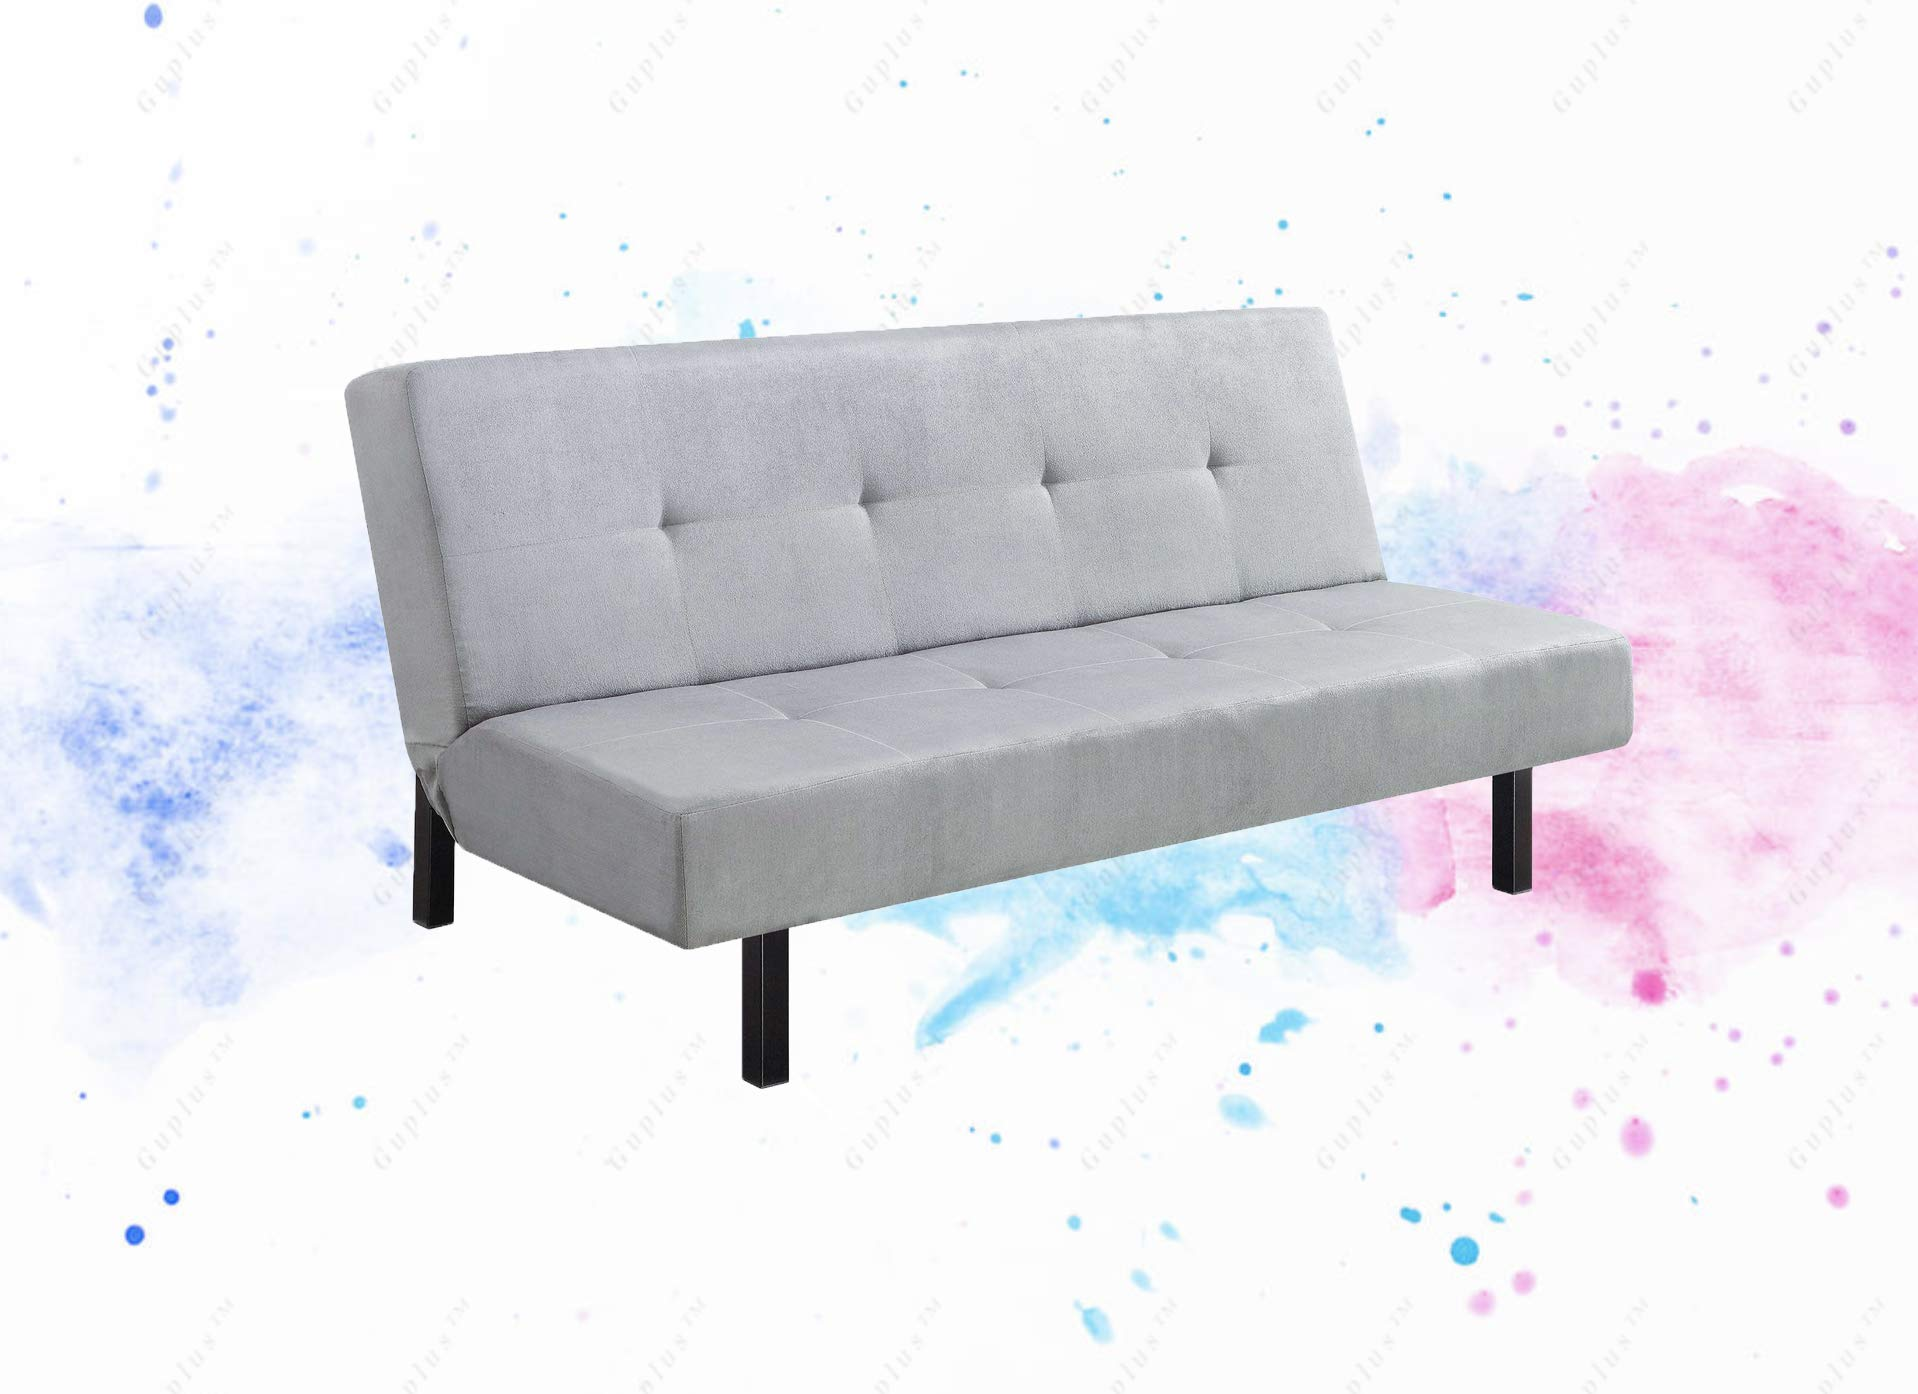 GUPLUS-65'' 3-Position Tufted Futon, Multiple Colors The futon Comes in a Plush Microfiber Upholstery That is to fit Any Room in Your Home, from The Living Room, Family by GUPLUS